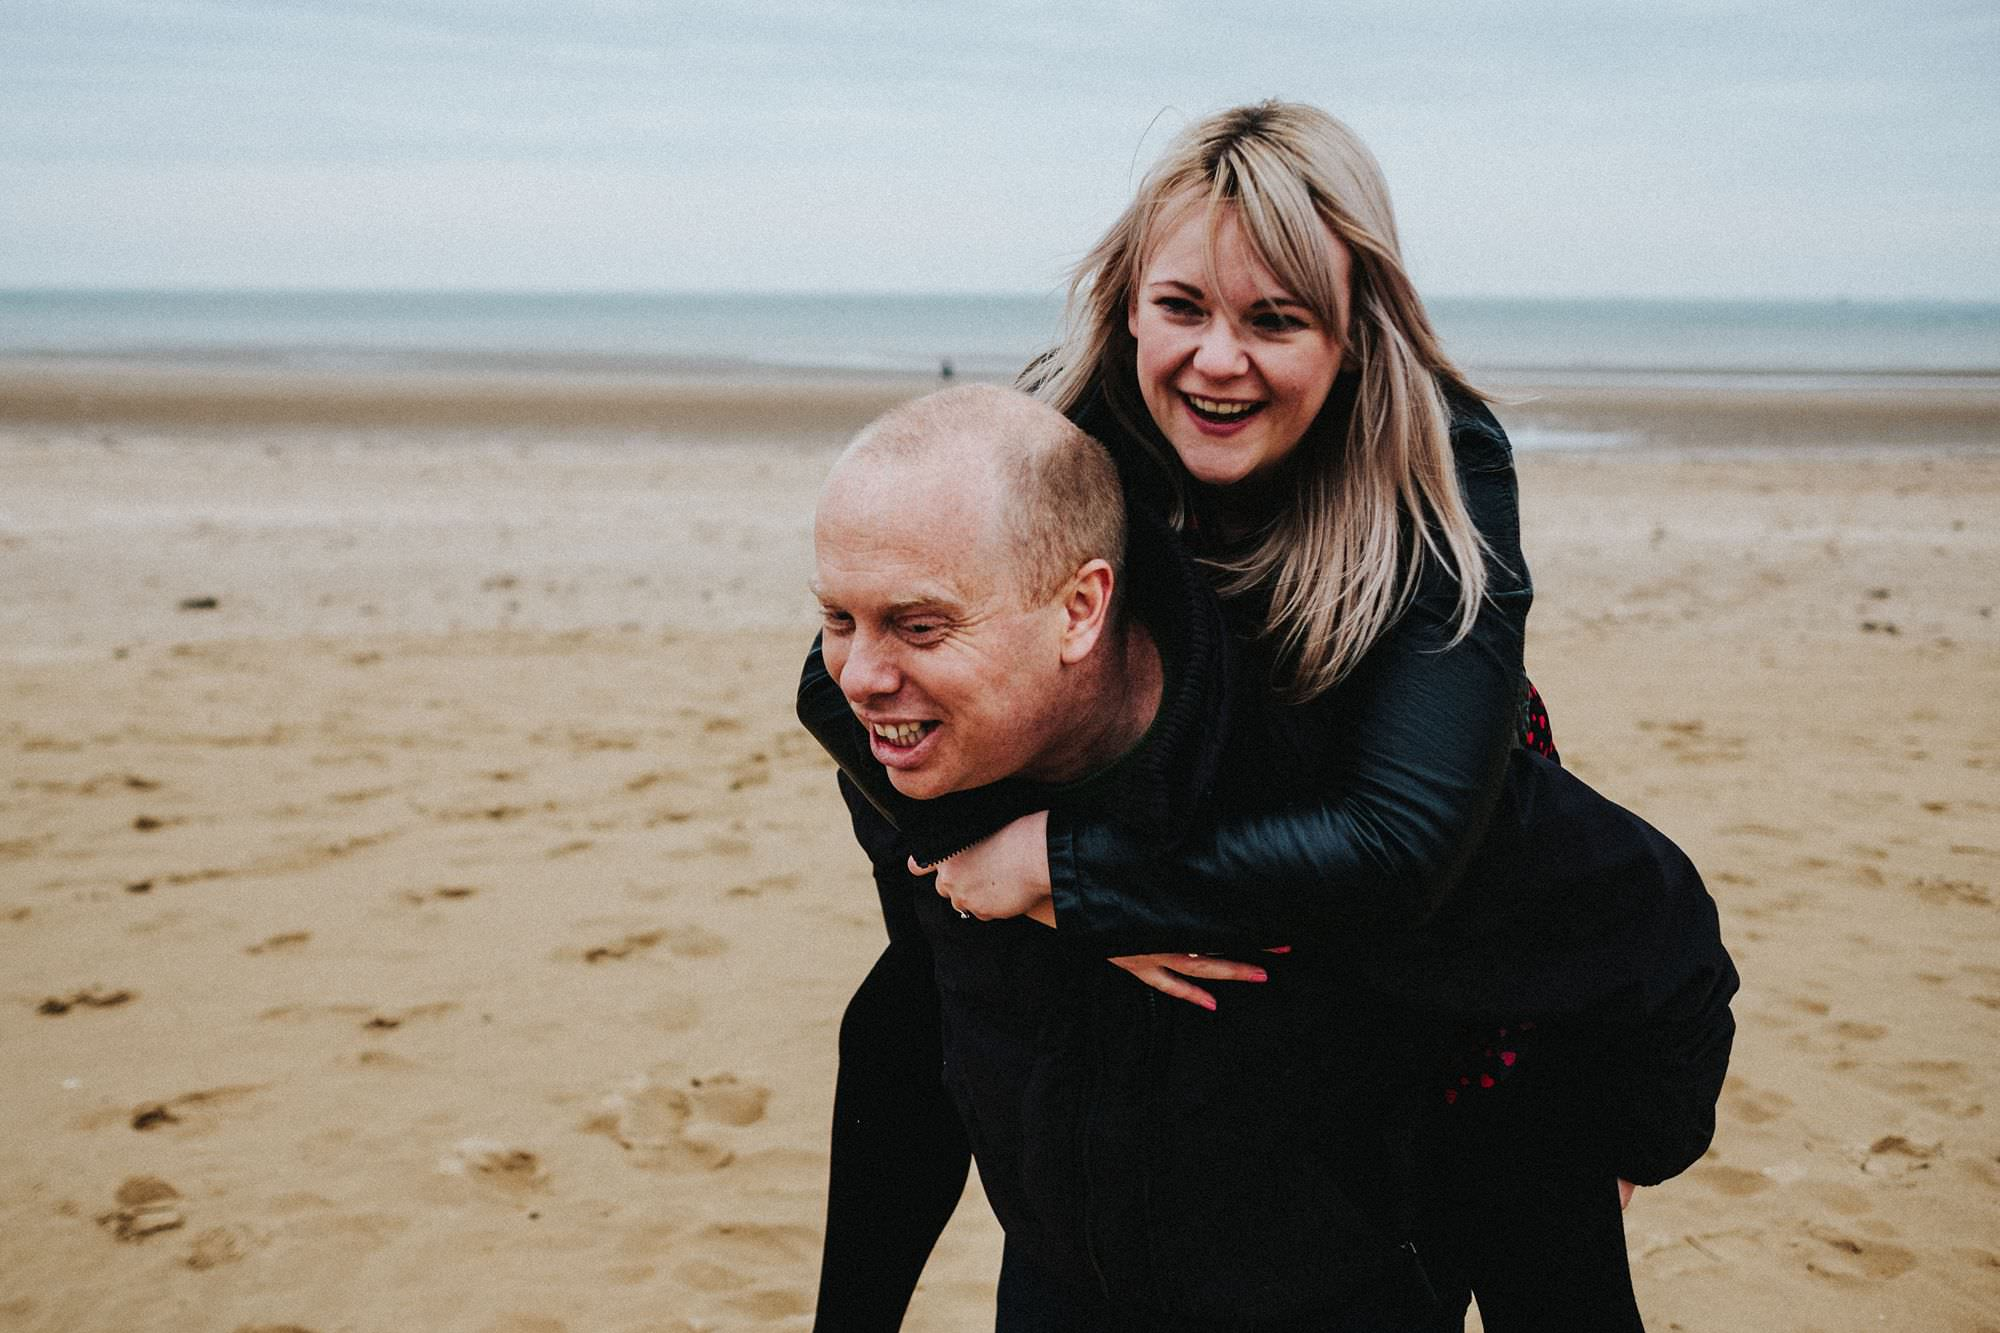 Margate engagement shoot with Kirsty and Simon